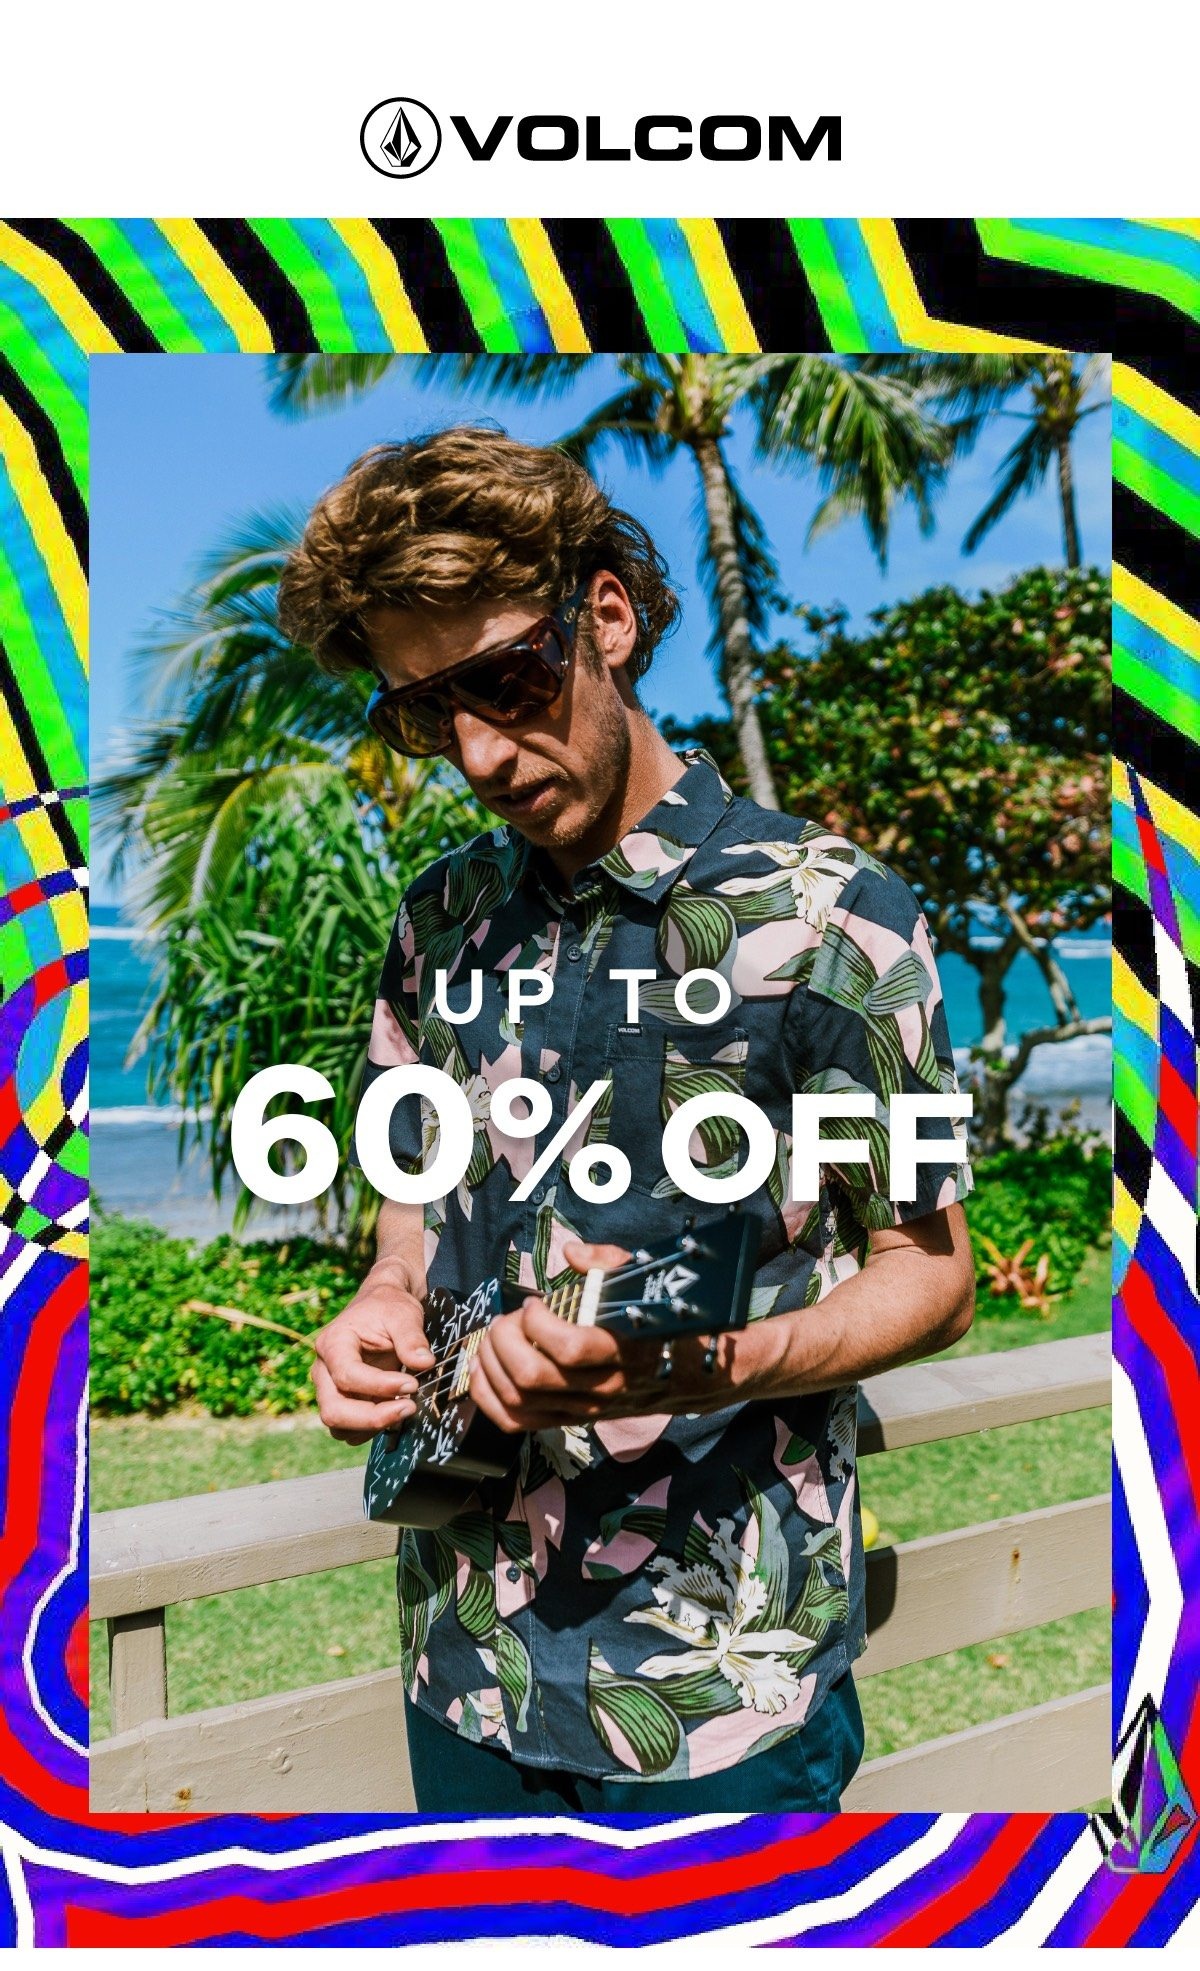 Volcom | Up to 60% off